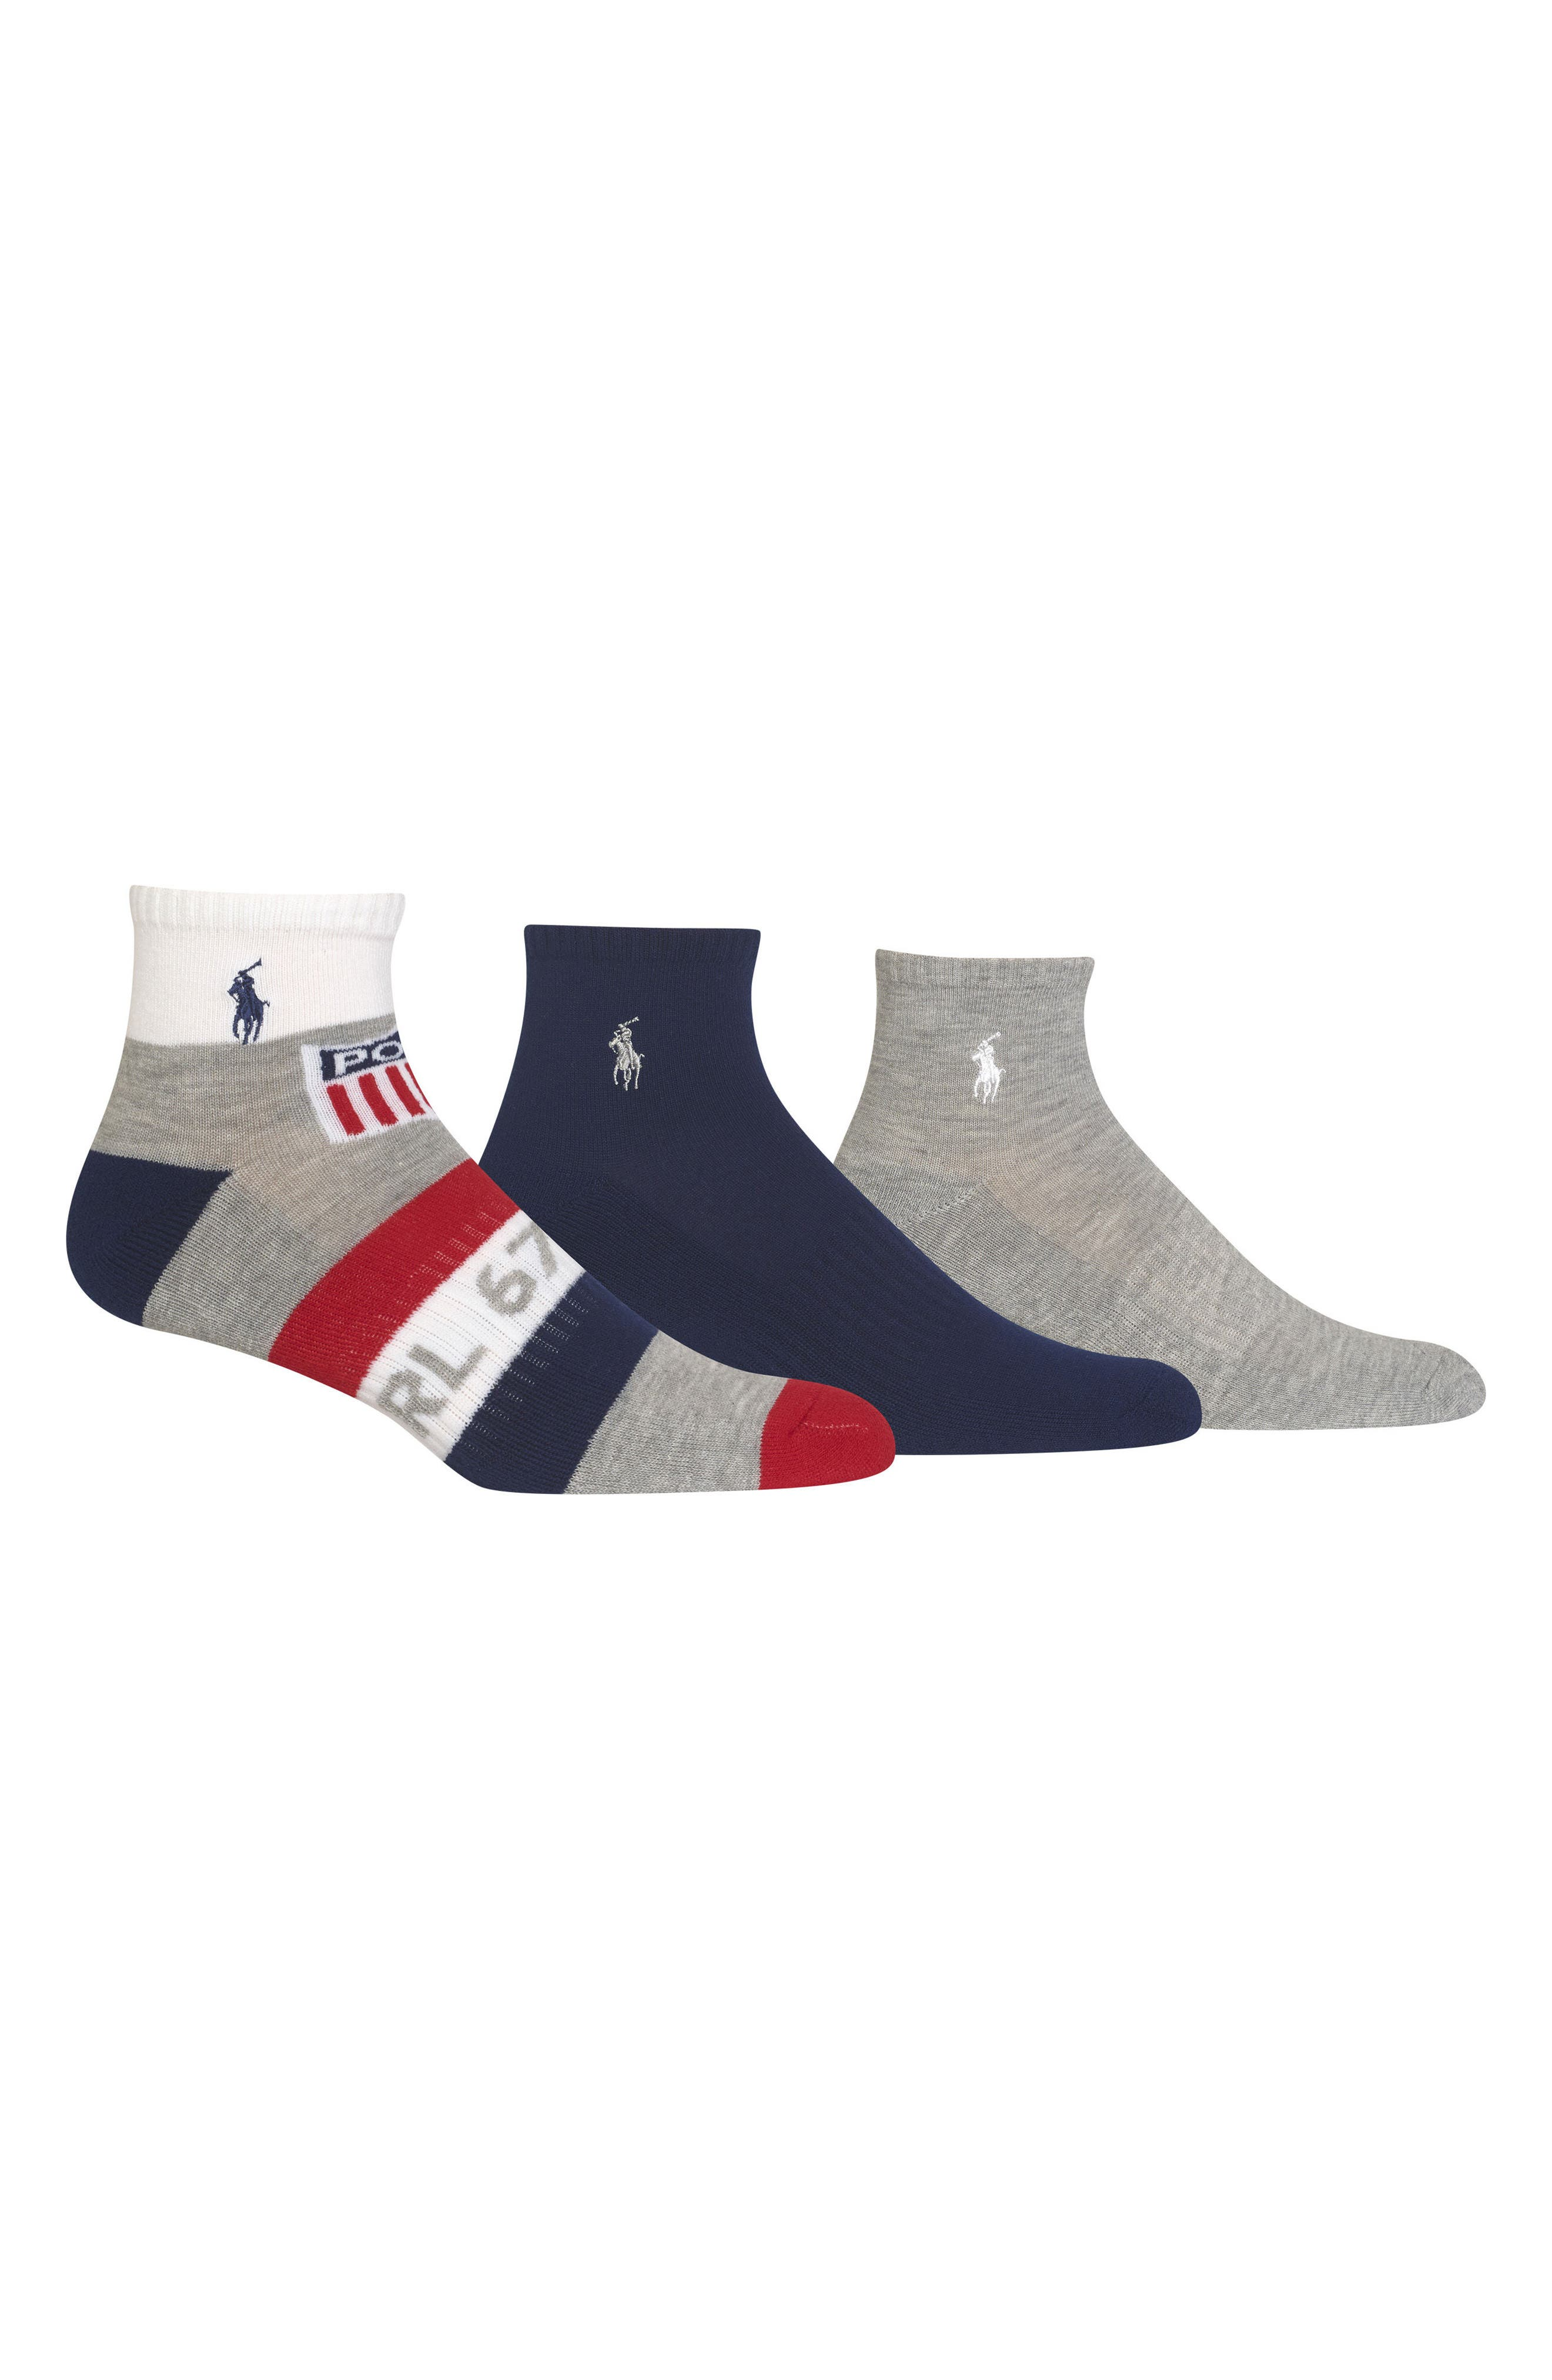 Ralph Lauren Athletic Shield 3-Pack Socks,                         Main,                         color, Grey/ White/ Red/ Blue